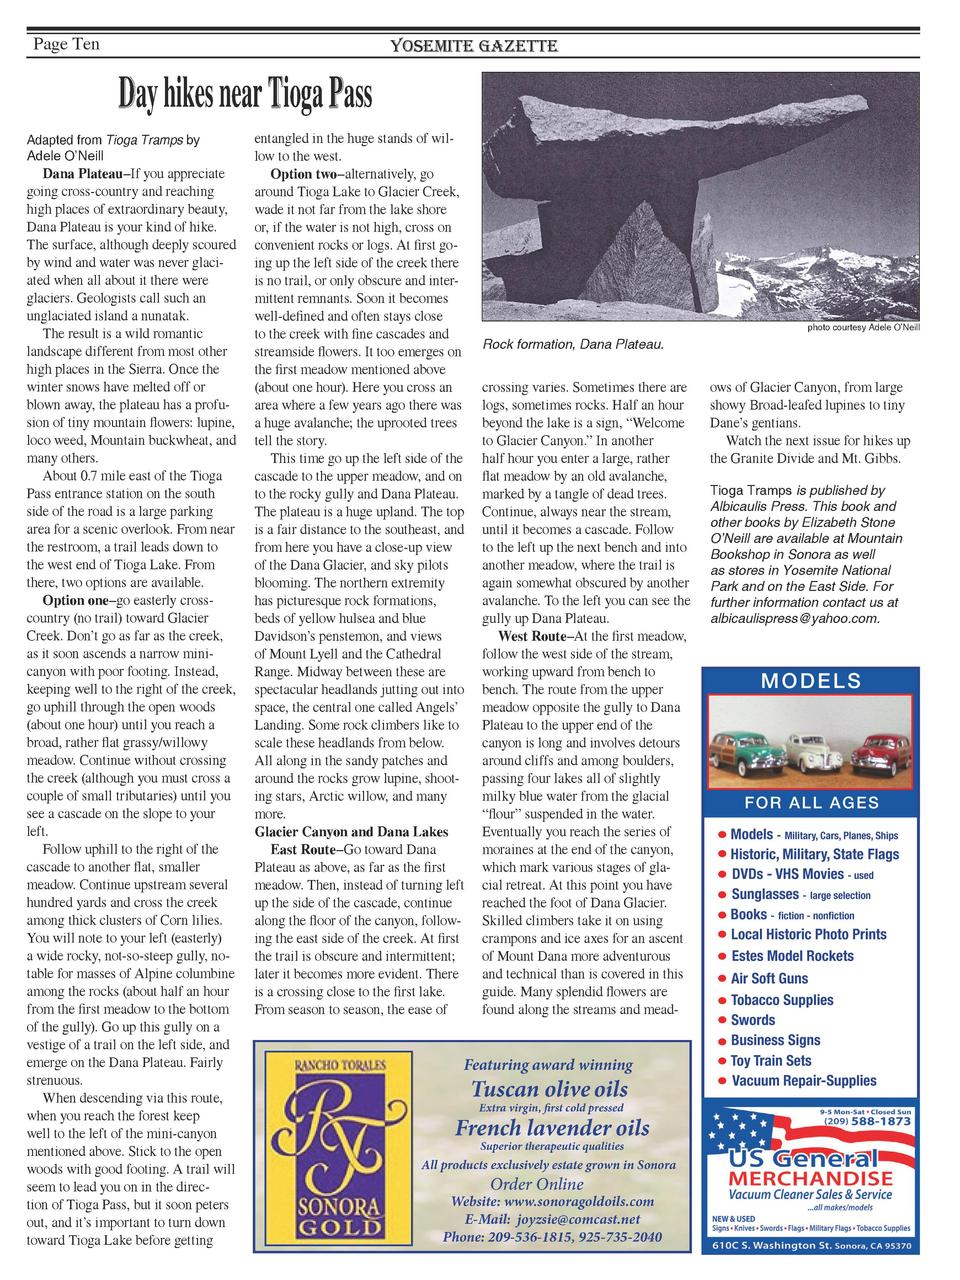 Page Ten  Yosemite Gazette  Day hikes near Tioga Pass Adapted from Tioga Tramps by Adele O   Neill  Dana Plateau   If you ...